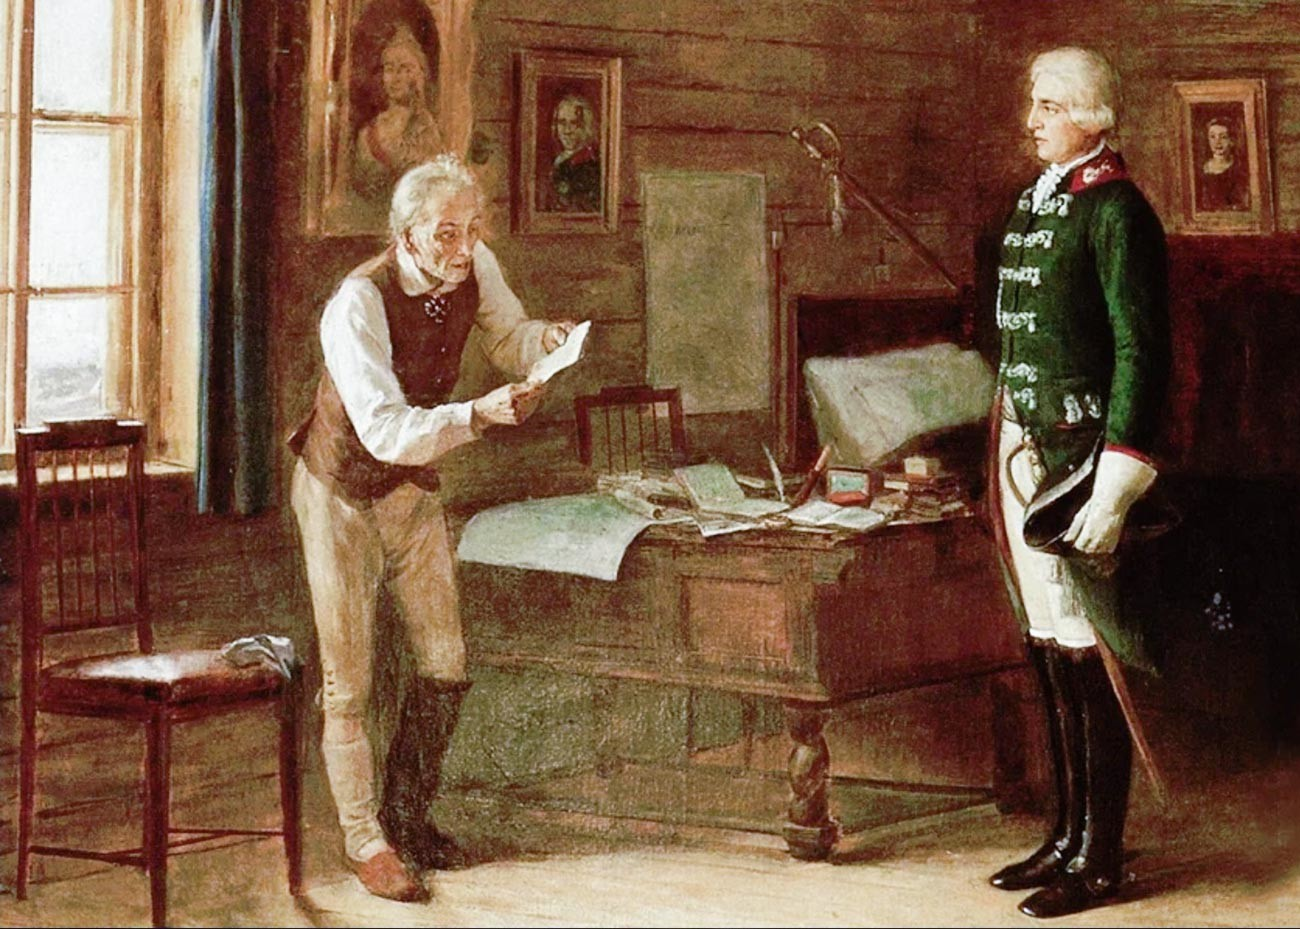 An exiled Suvorov receiving orders to lead the Russian Army against Napoleon